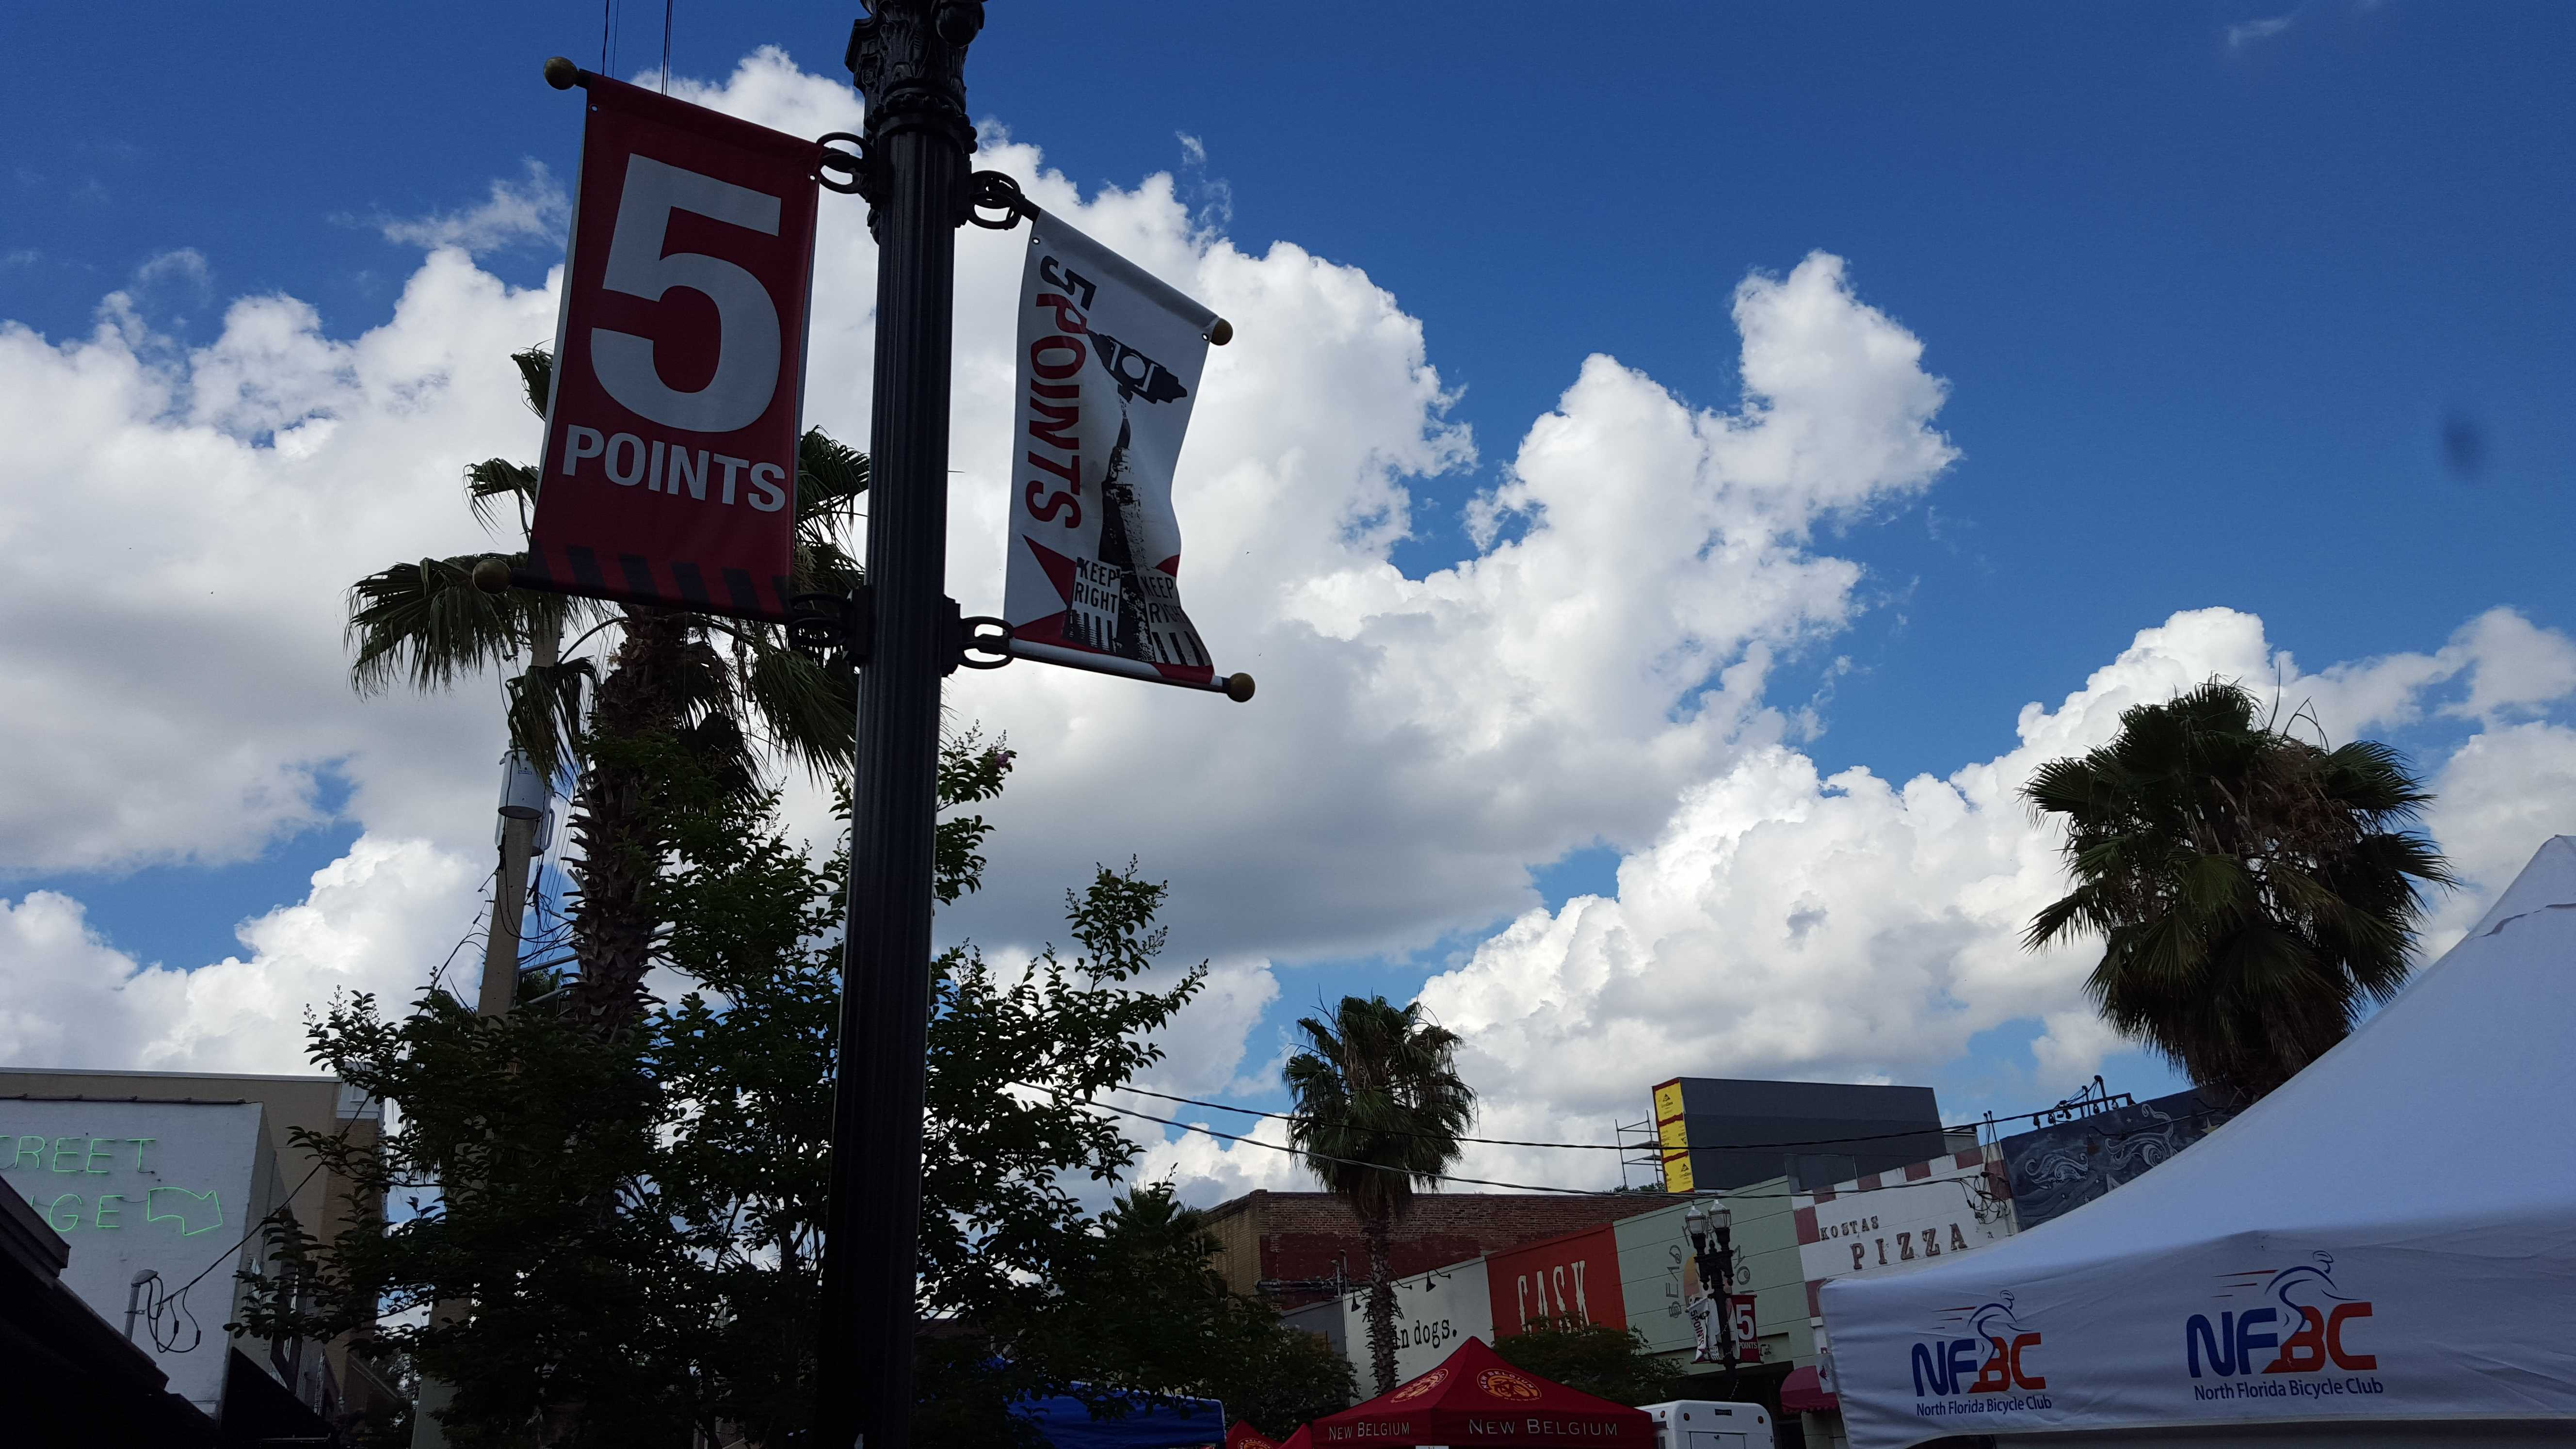 Five Points Spring Festival: Would I go again?